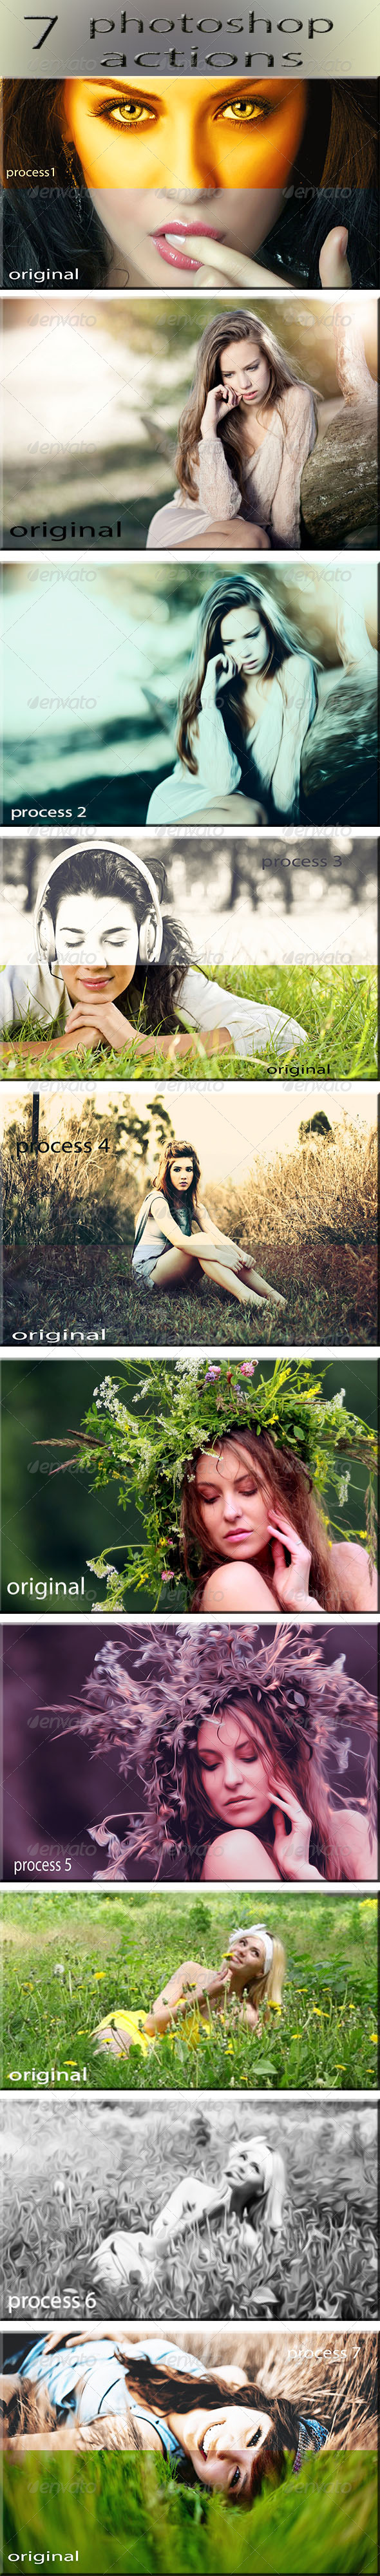 GraphicRiver 7 Photoshop Actions 7778243